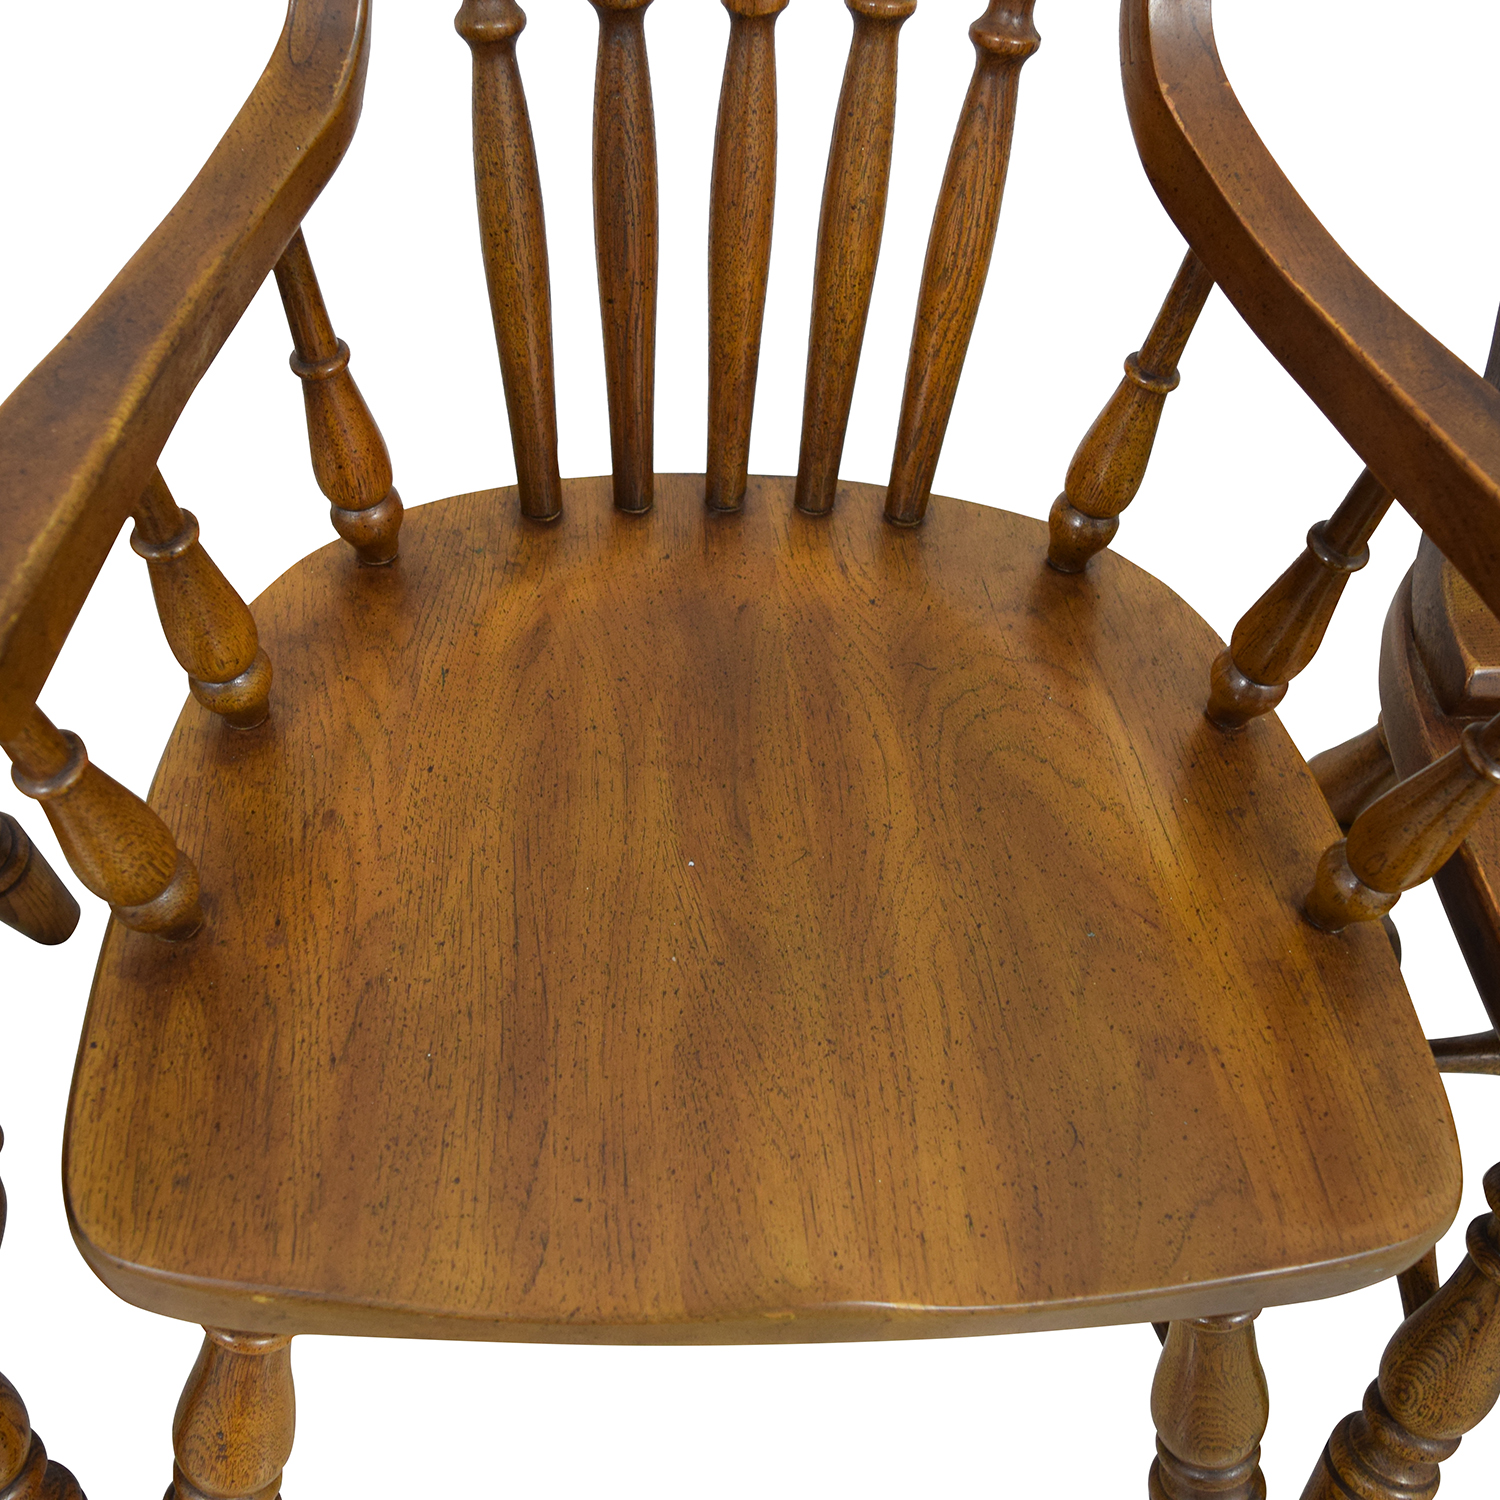 Superb 90 Off Antique Oak Spindle Dining Chairs Chairs Evergreenethics Interior Chair Design Evergreenethicsorg